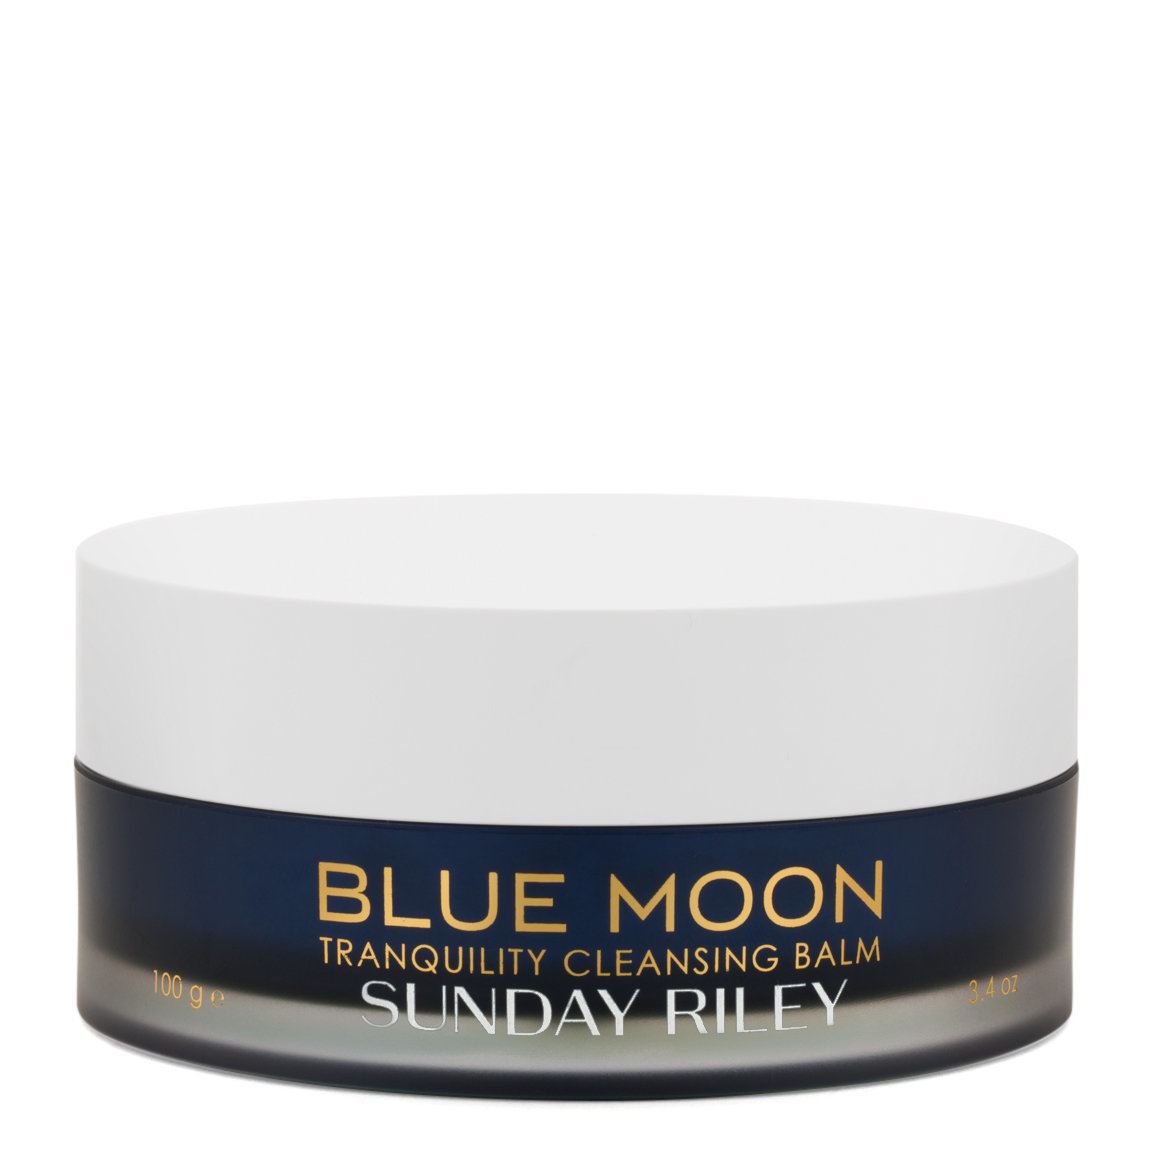 Sunday Riley Blue Moon Tranquility Cleansing Balm product swatch.